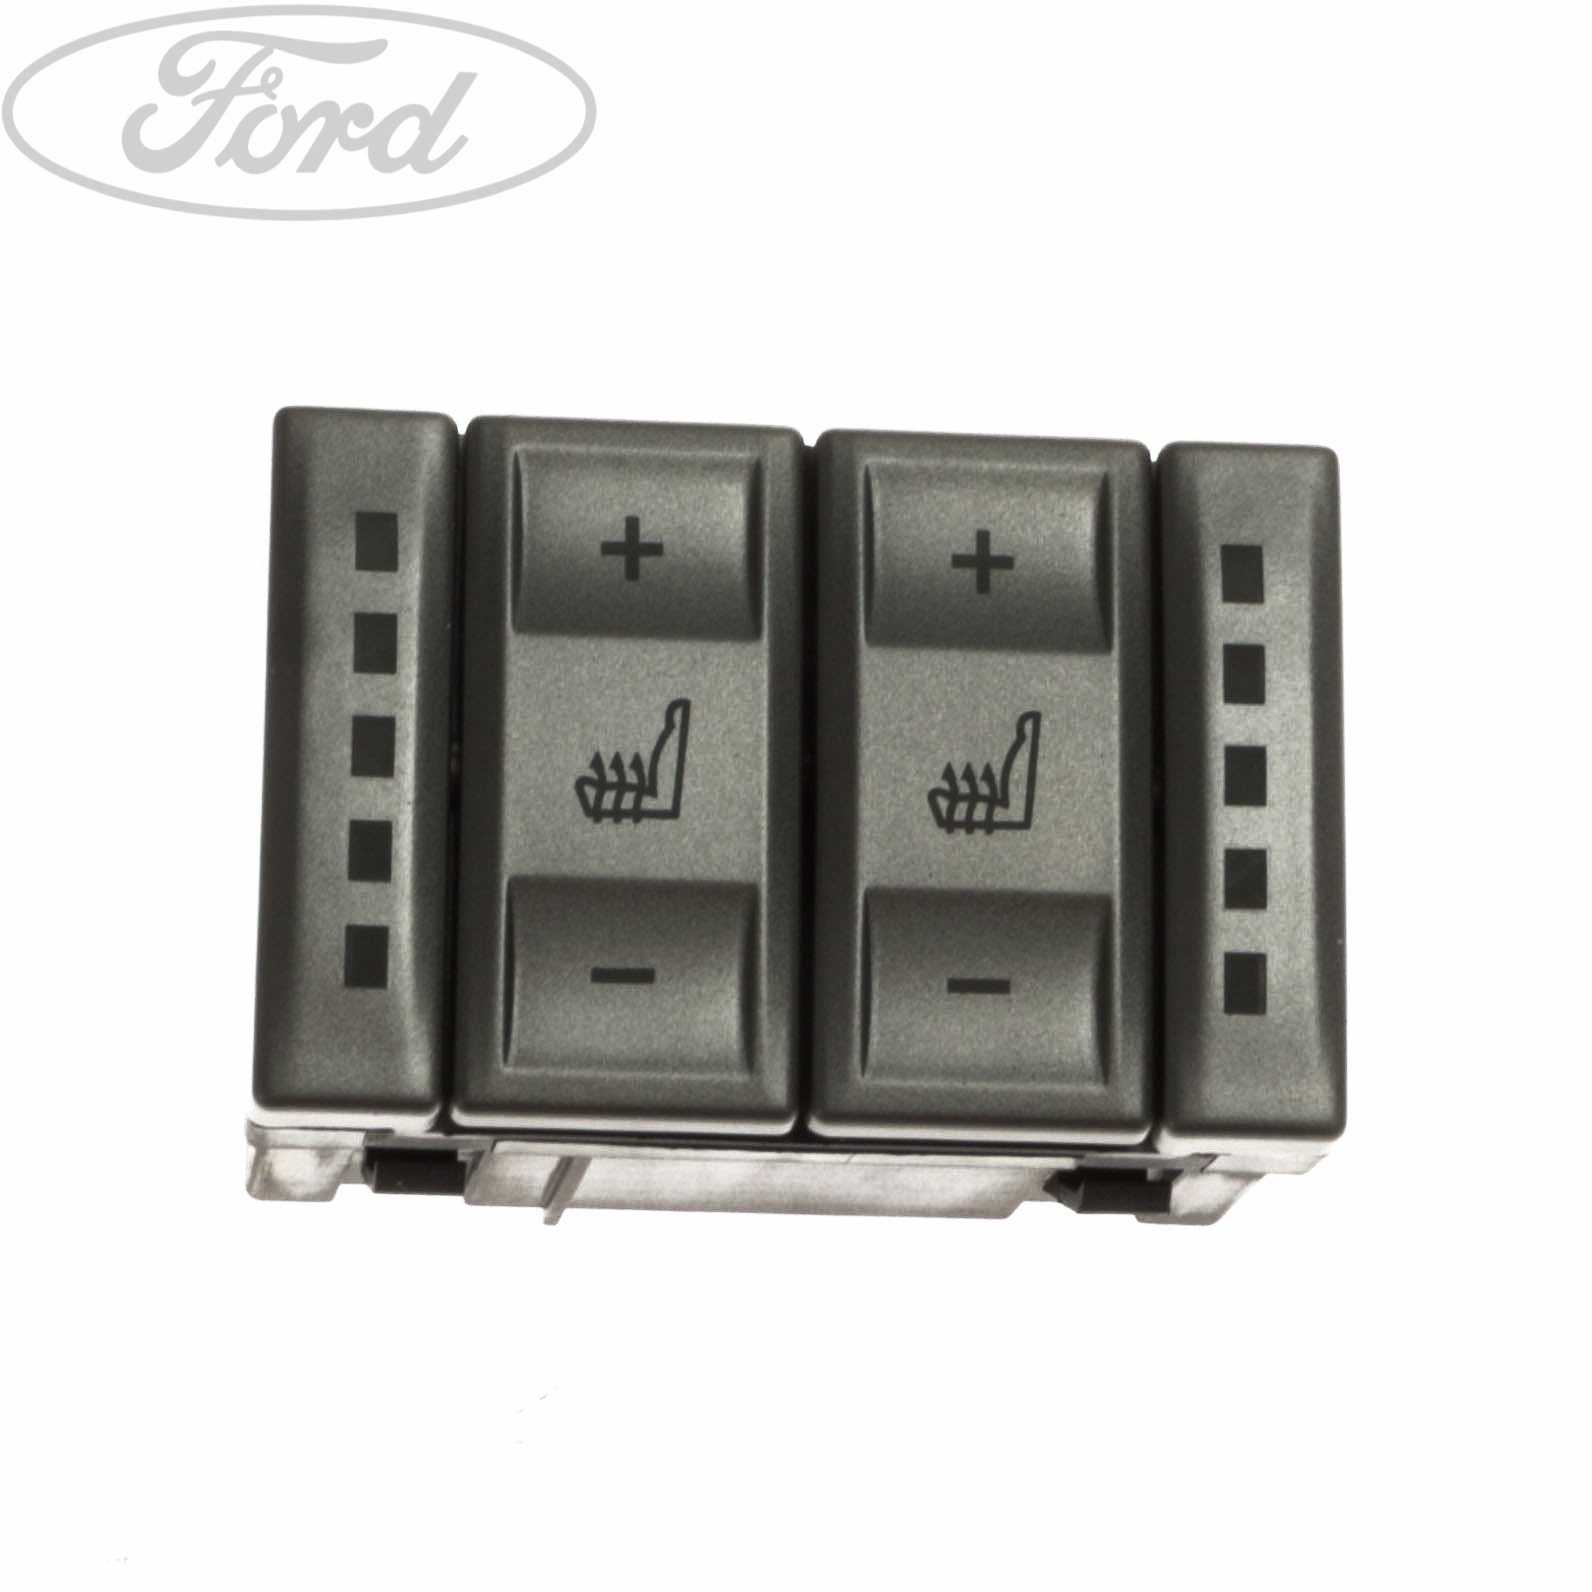 1556673 01 genuine ford mondeo mk4 galaxy s max front heated seats panel mondeo mk4 central fuse box location at honlapkeszites.co